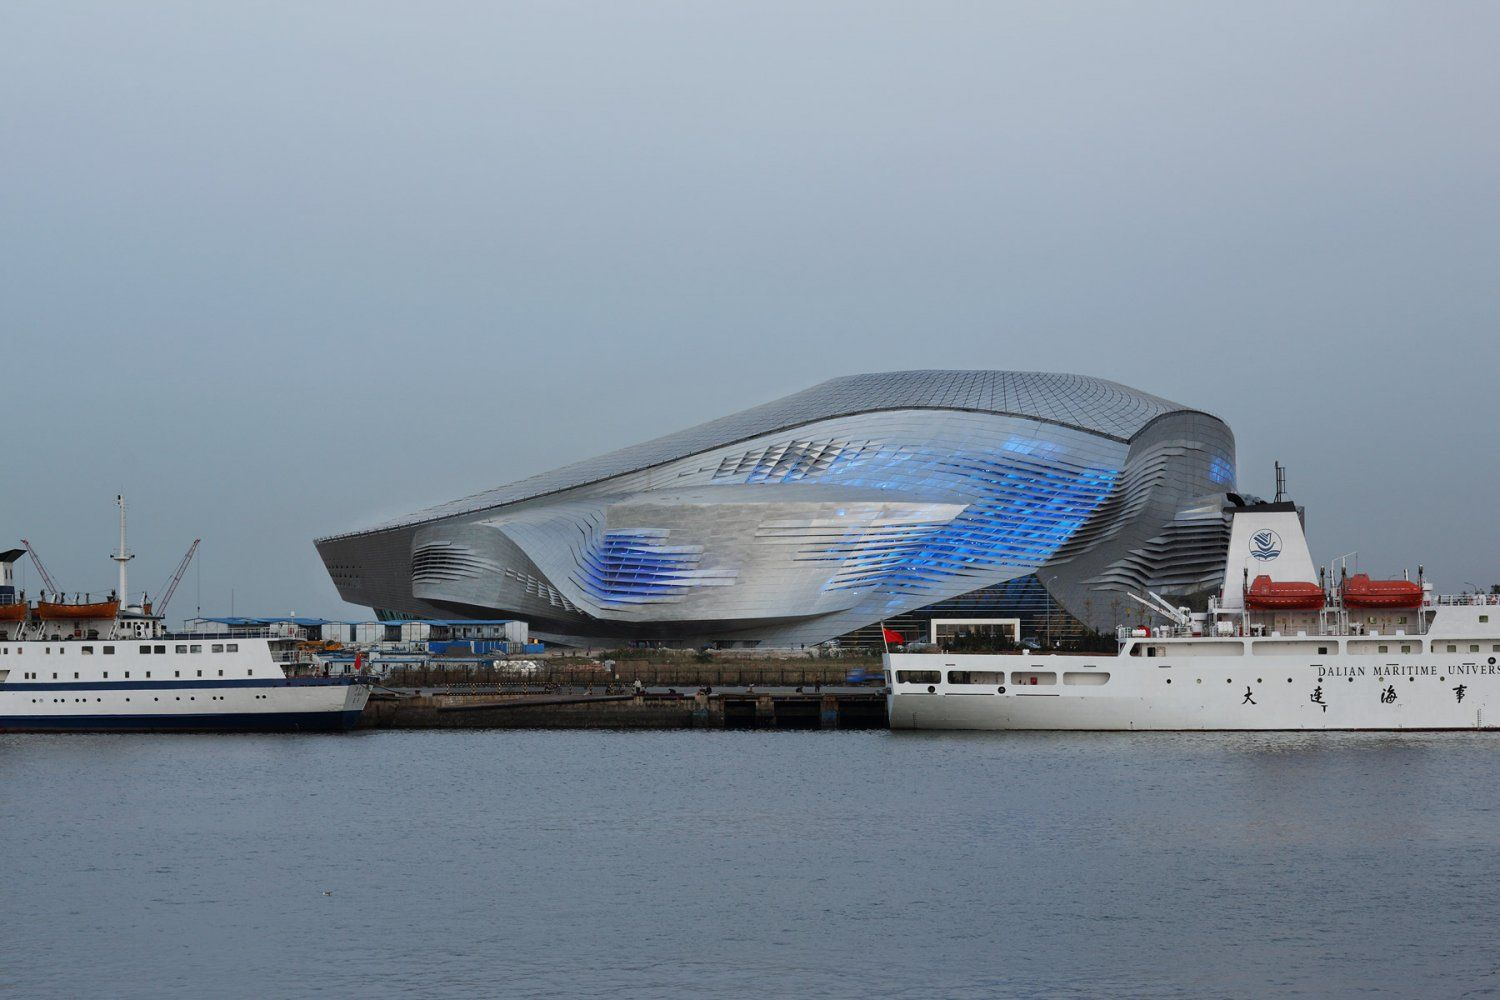 http://www.coop-himmelblau.at/architecture/projects/dalian-international-conference-center